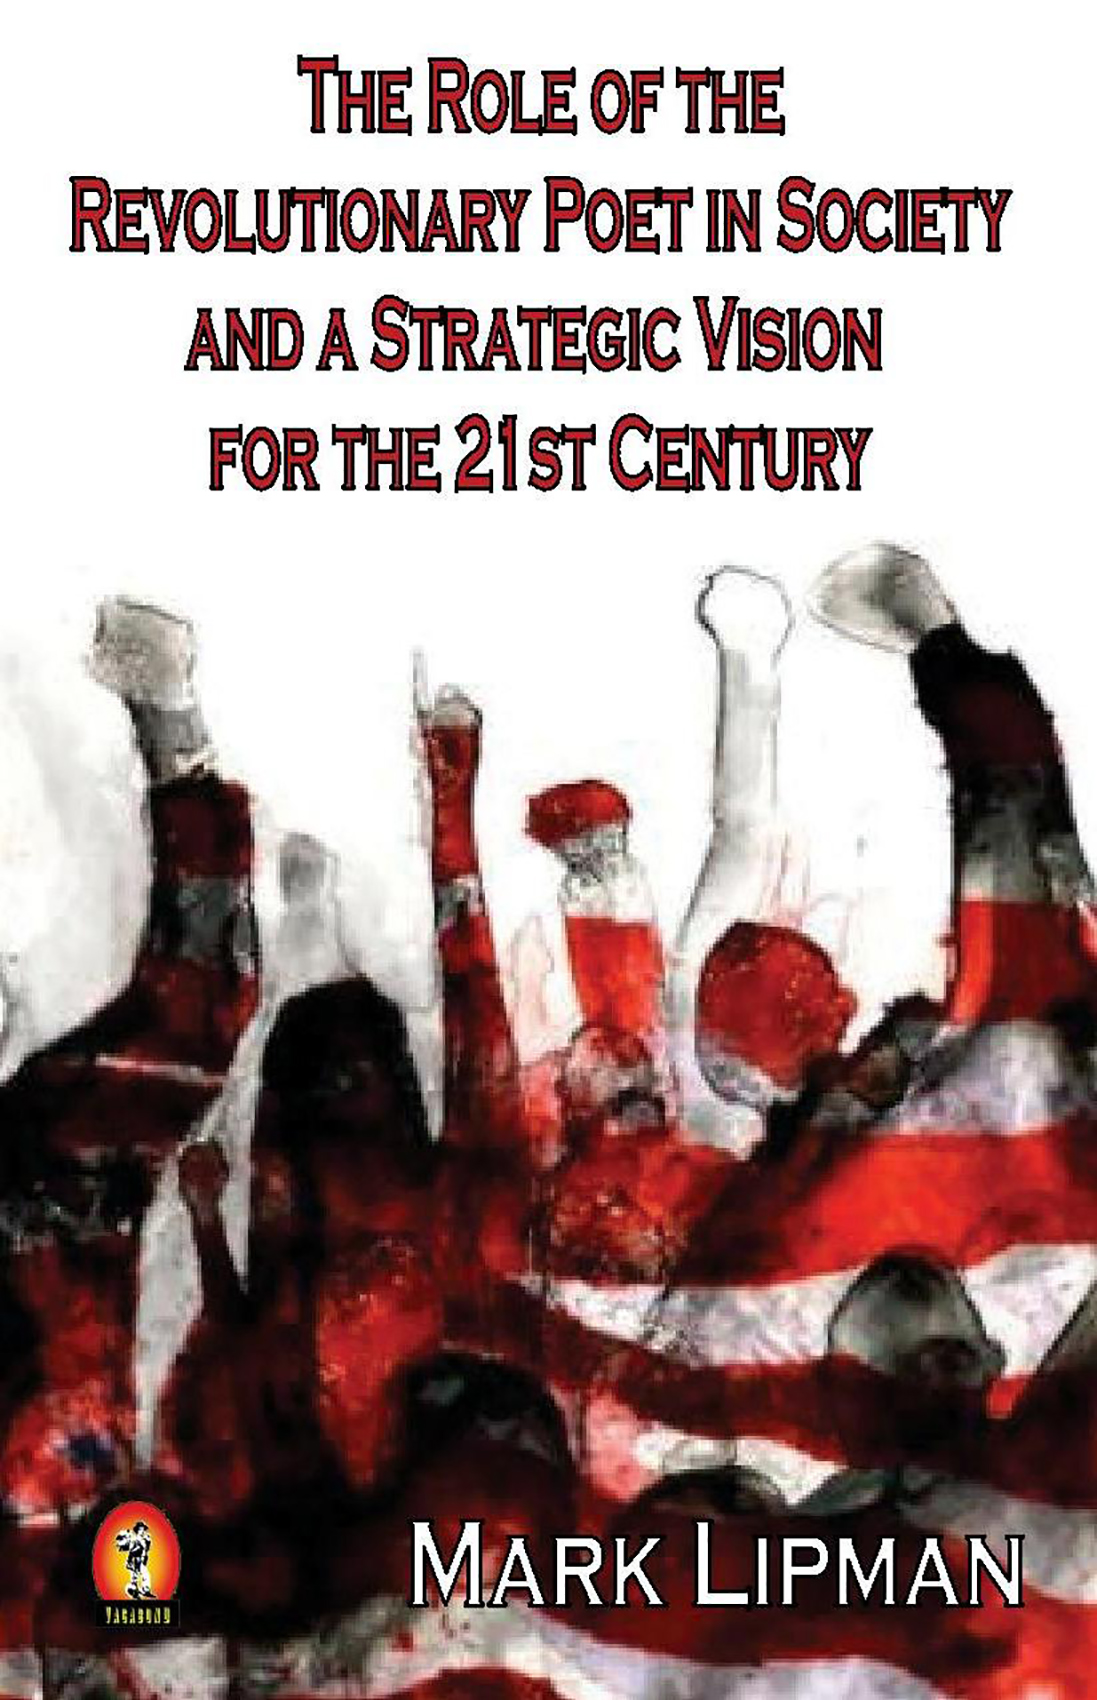 The Role of the Revolutionary Poet in Society and a Strategic Vision for the 21st Century